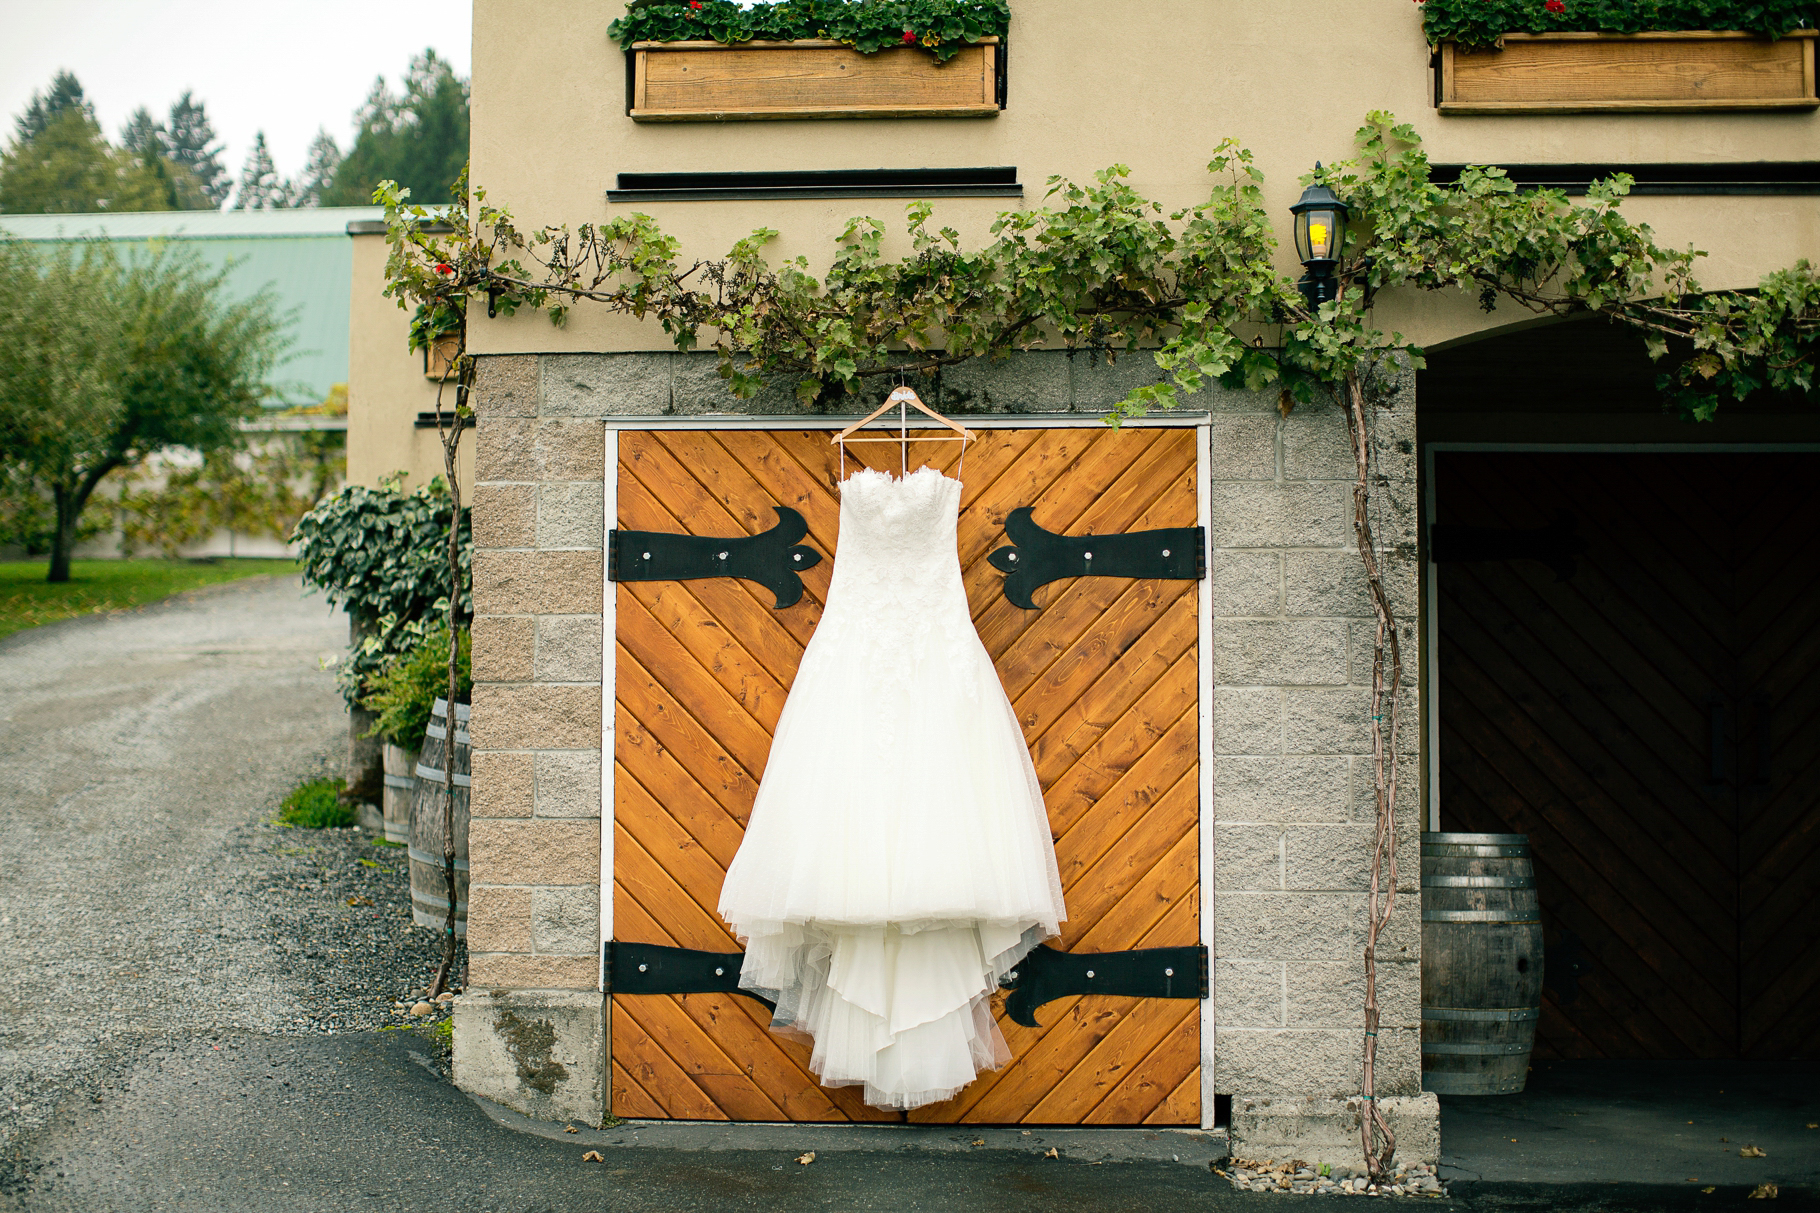 74-2015-Photographer-Year-in-Review-Woodinville-DeLille-Cellars-Seattle-Wedding-Photography-by-Betty-Elaine